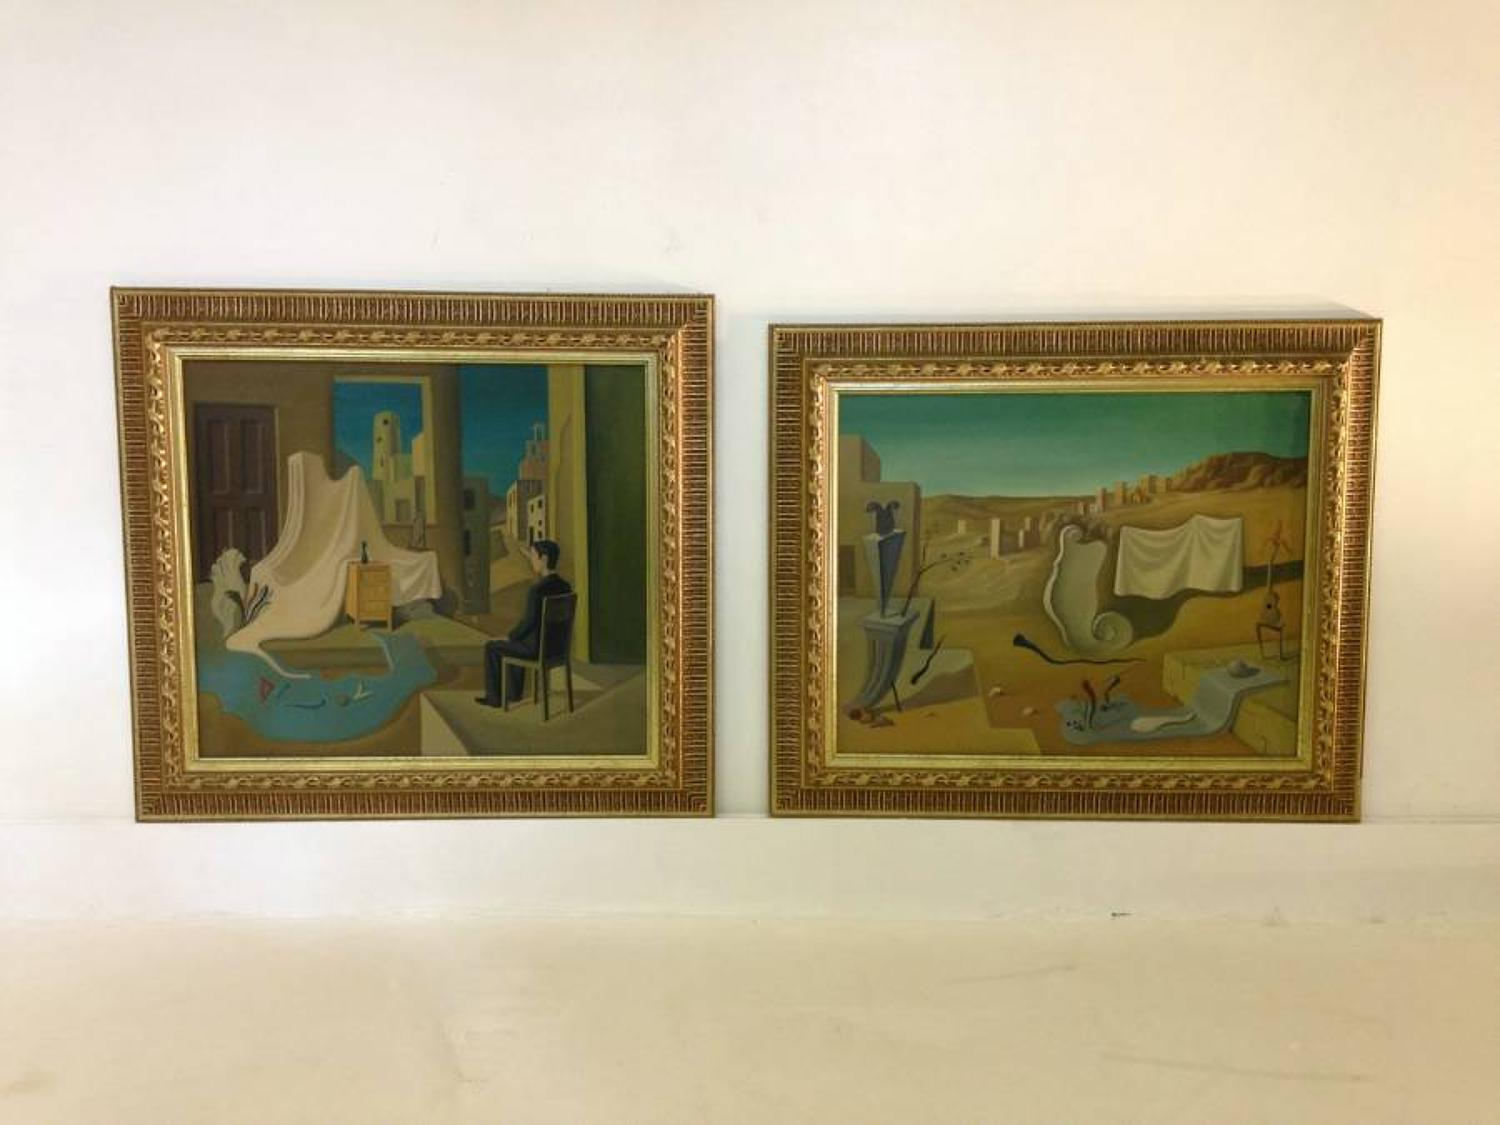 A pair of surrealist oil paintings